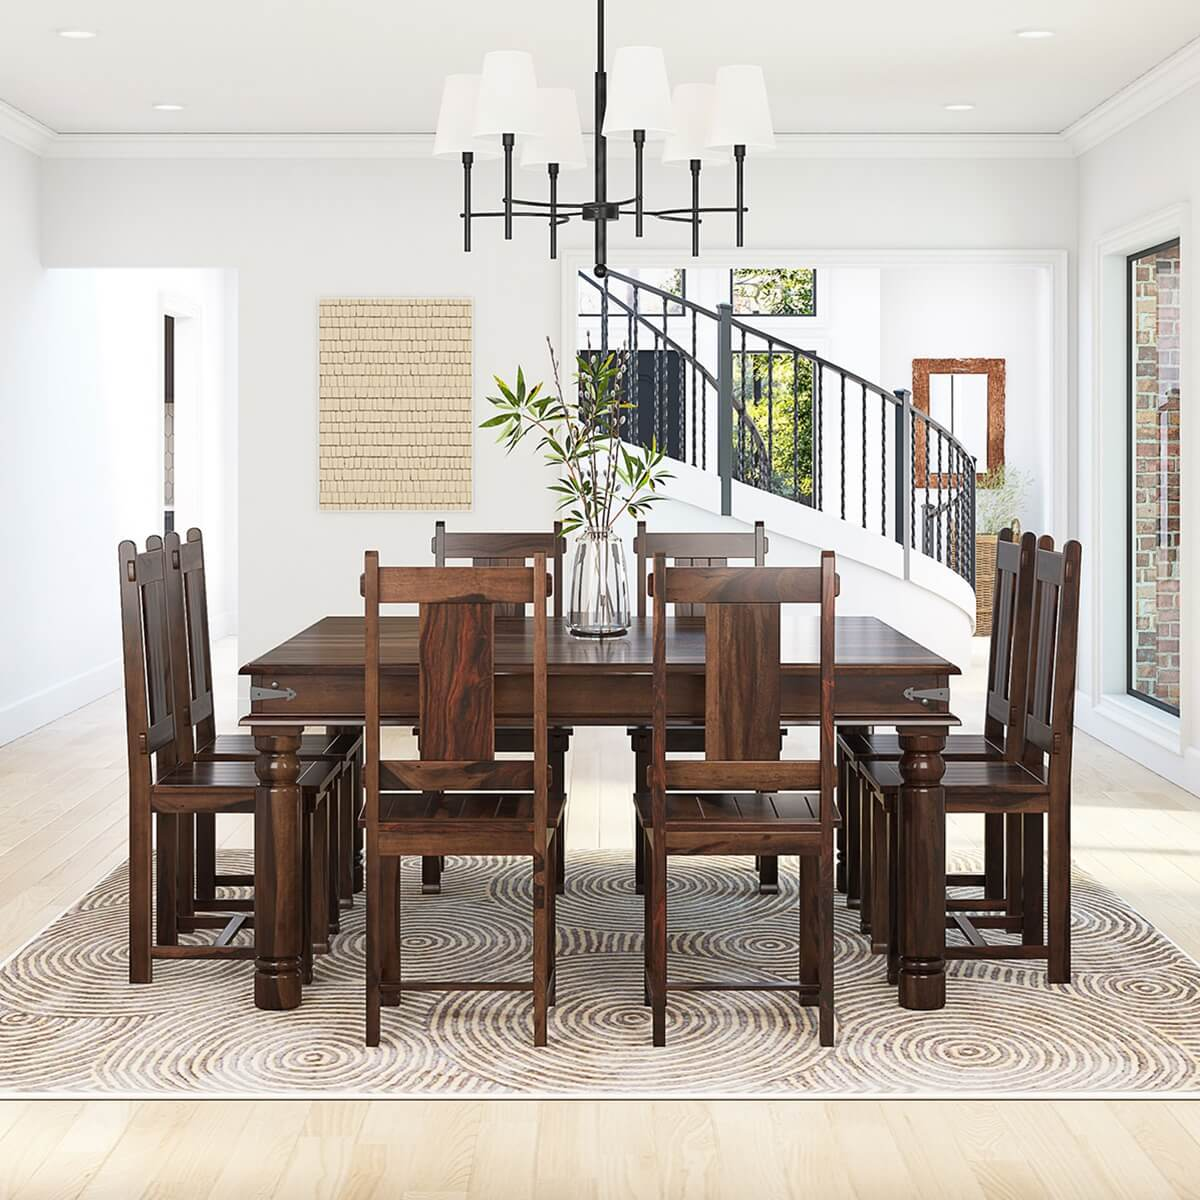 Dining table 8 people dining table size for 8 chair dining room table